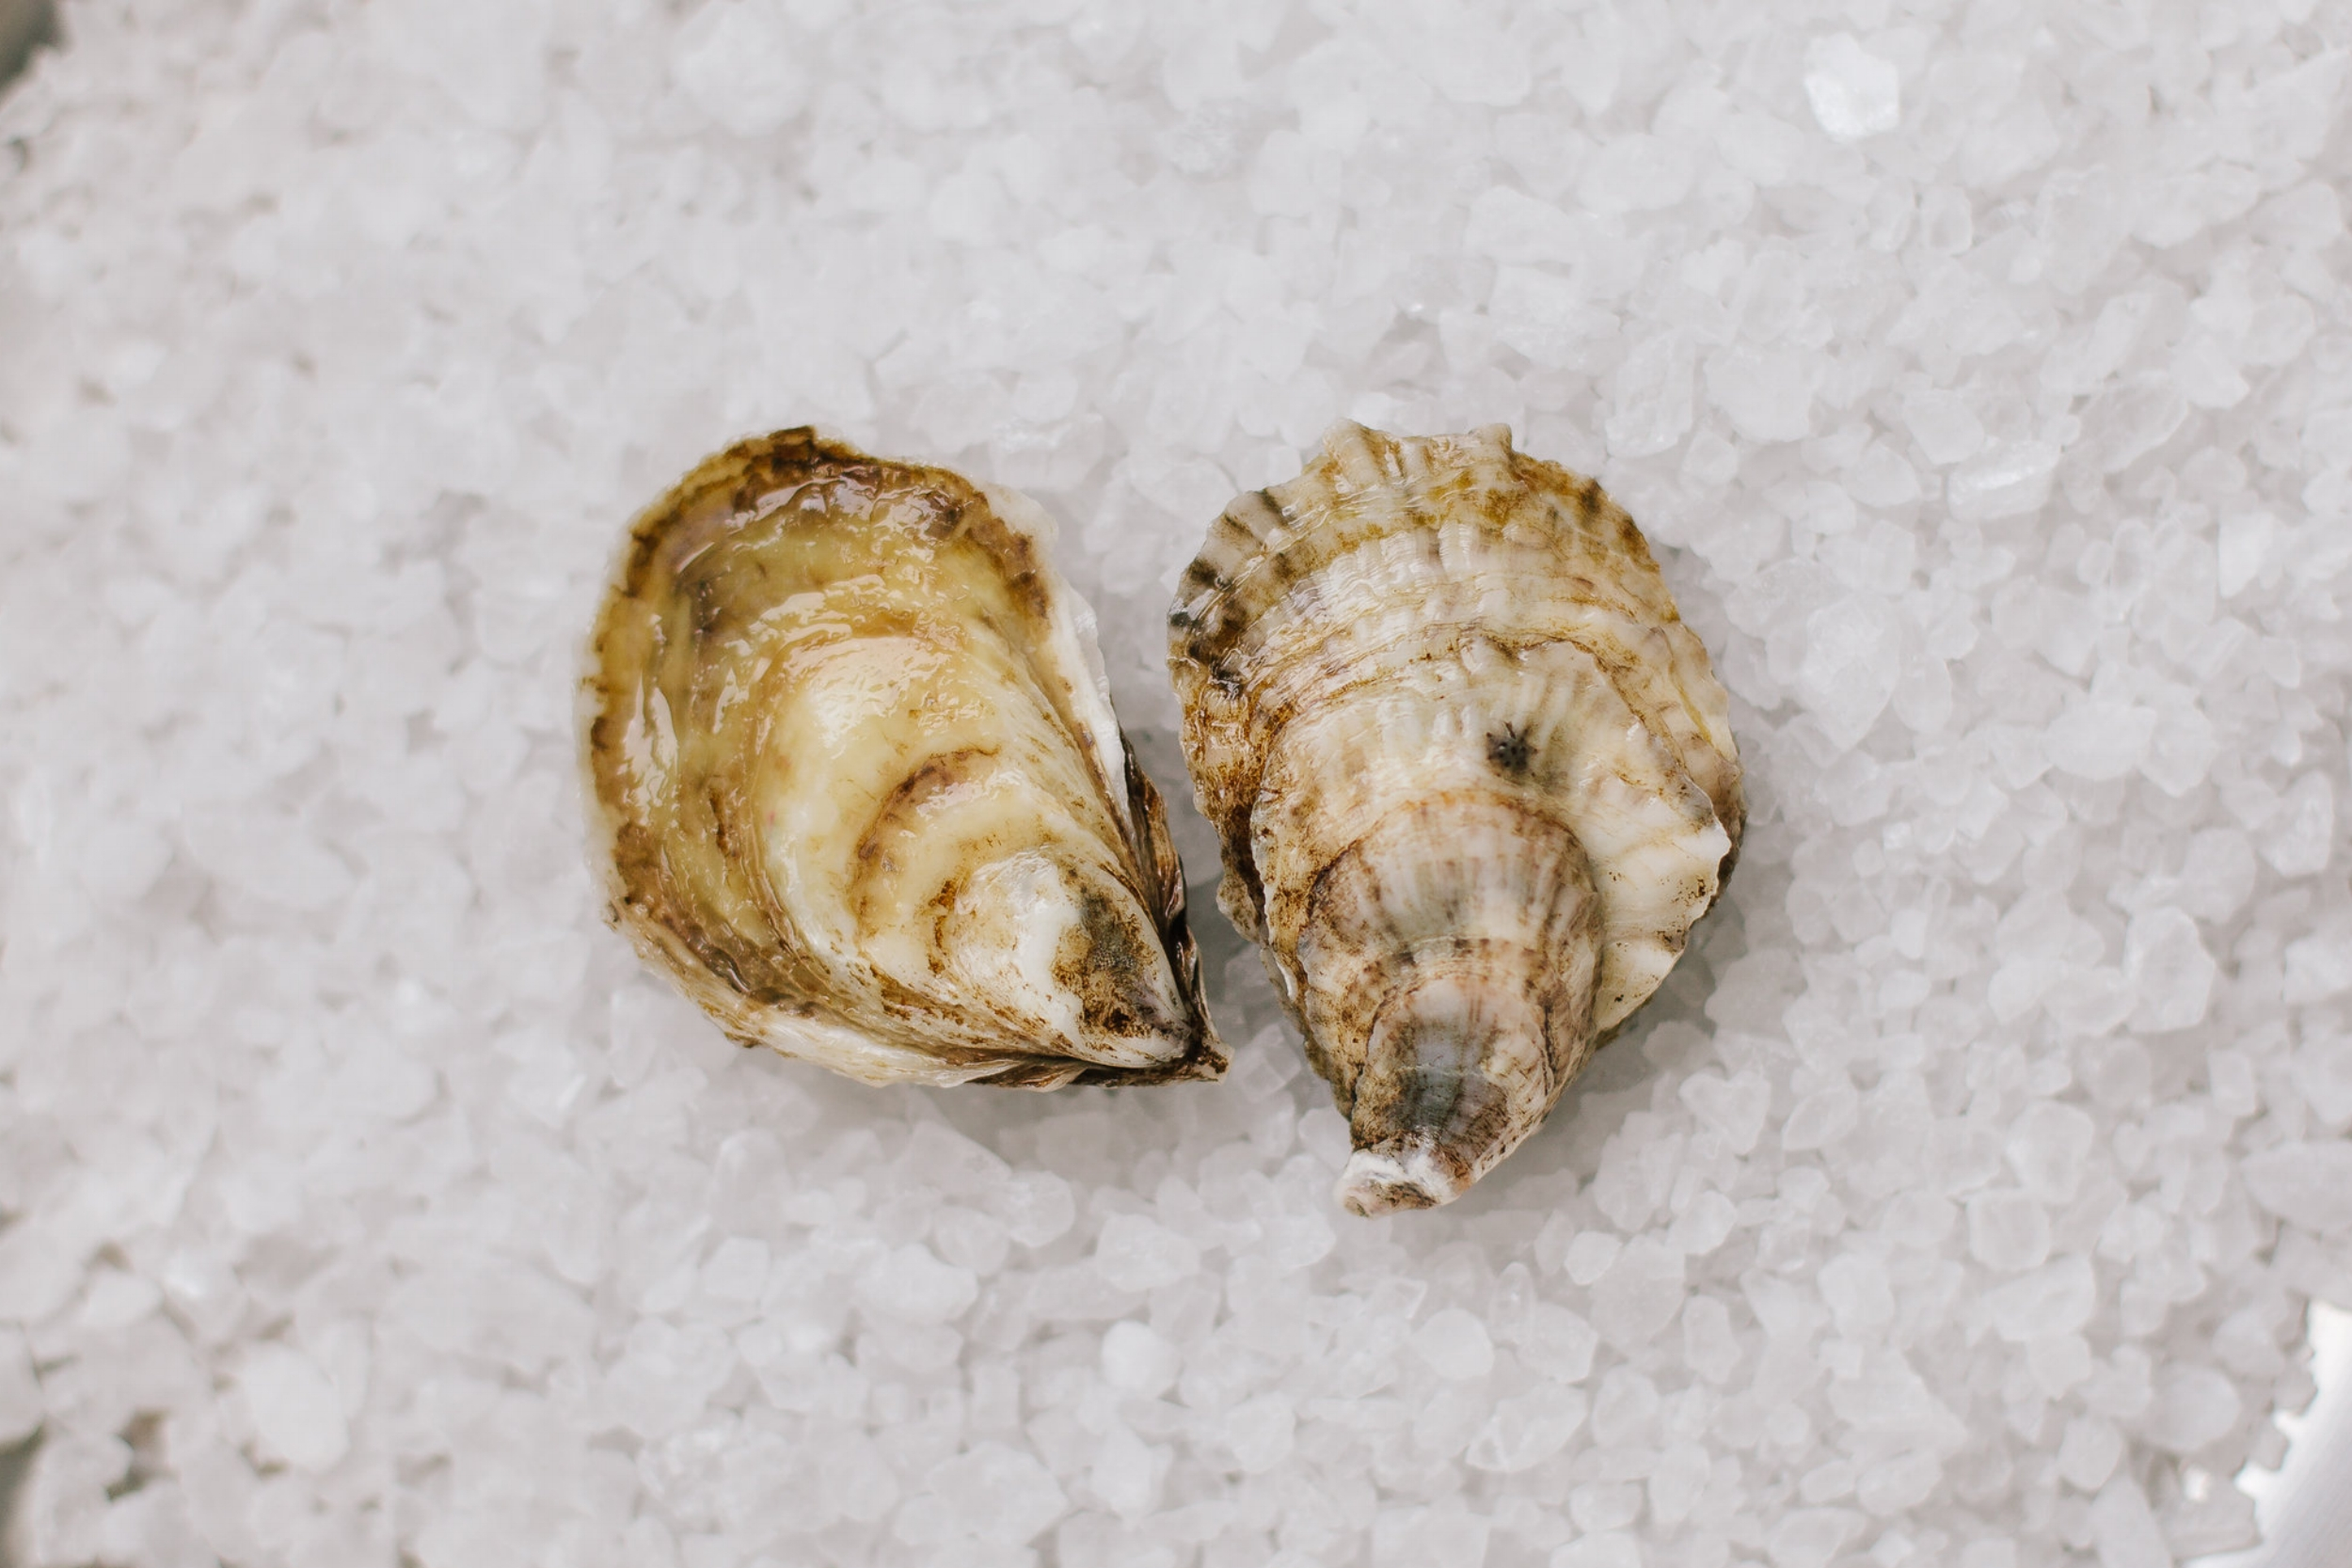 Beausoleil - Origin: New Brunswick, CanadaFlavor Profile: Light, refined briny meat that sits in a petite shell. Great for the novice oyster eater.